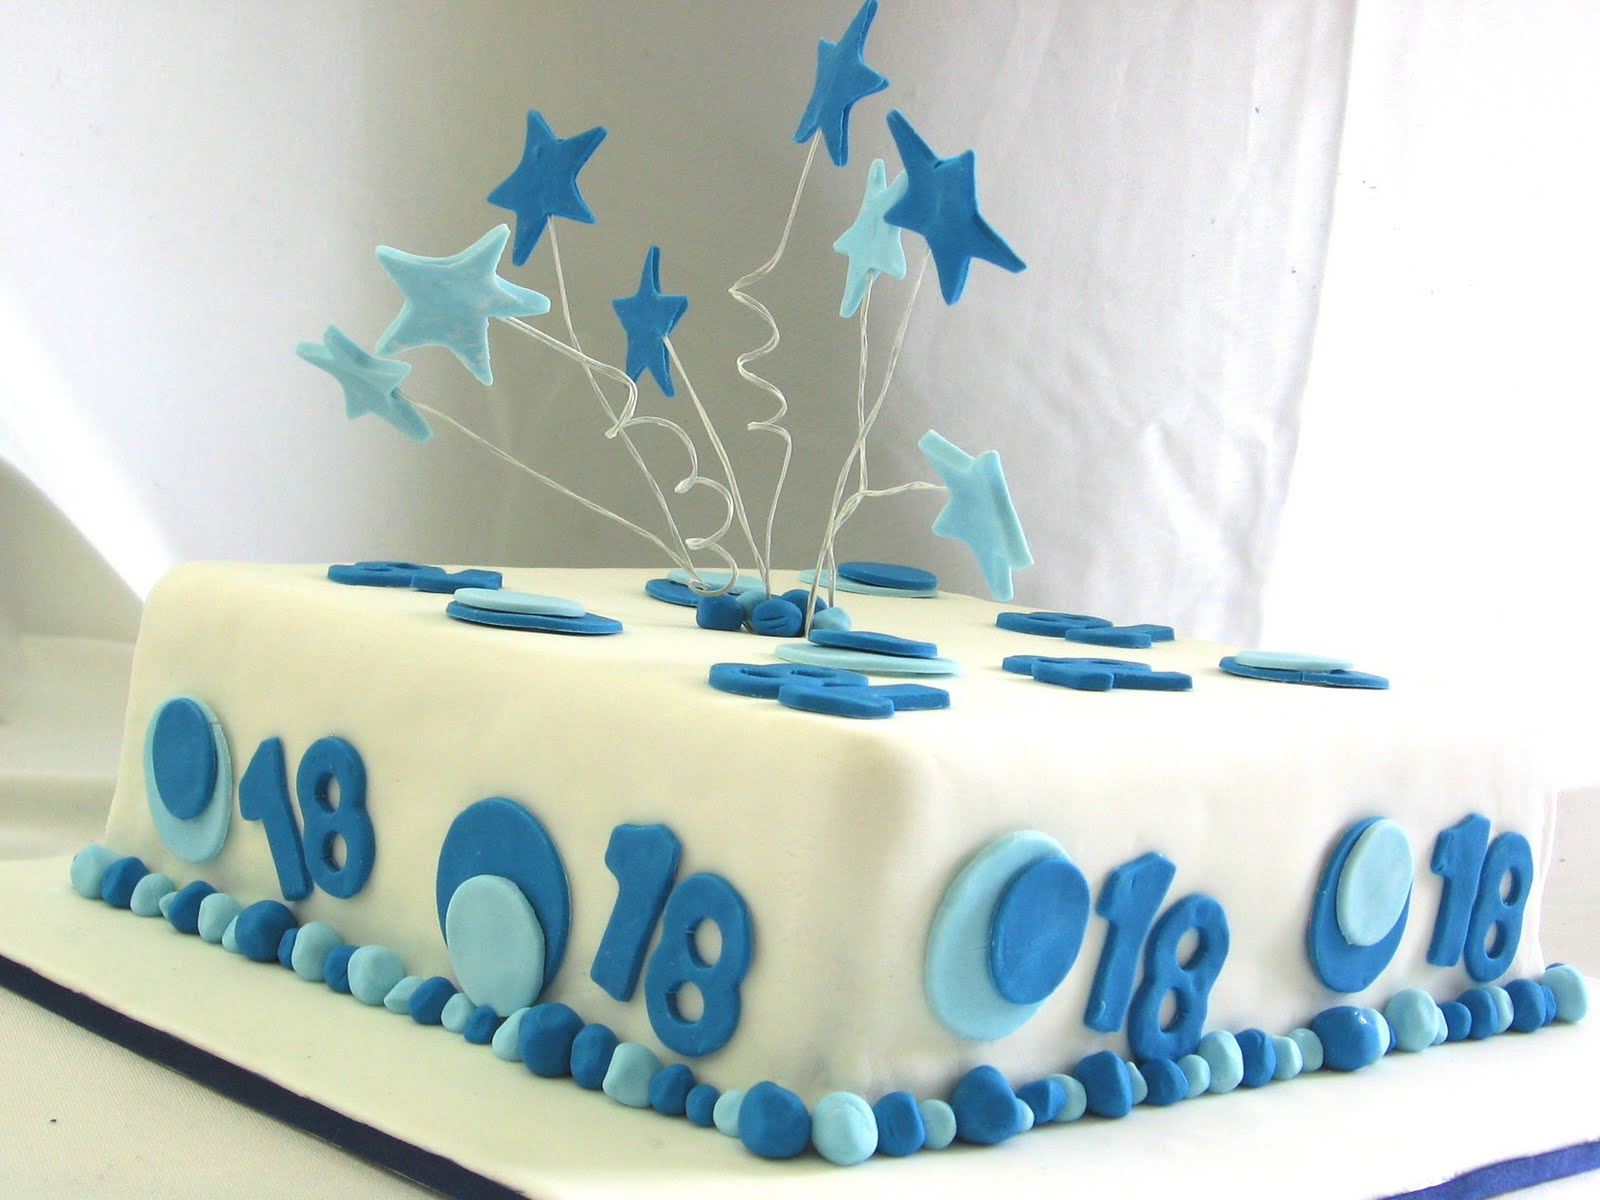 Cake Designs For 18 Year Old Boy : Rachel Warner Cakes: 18th Cake